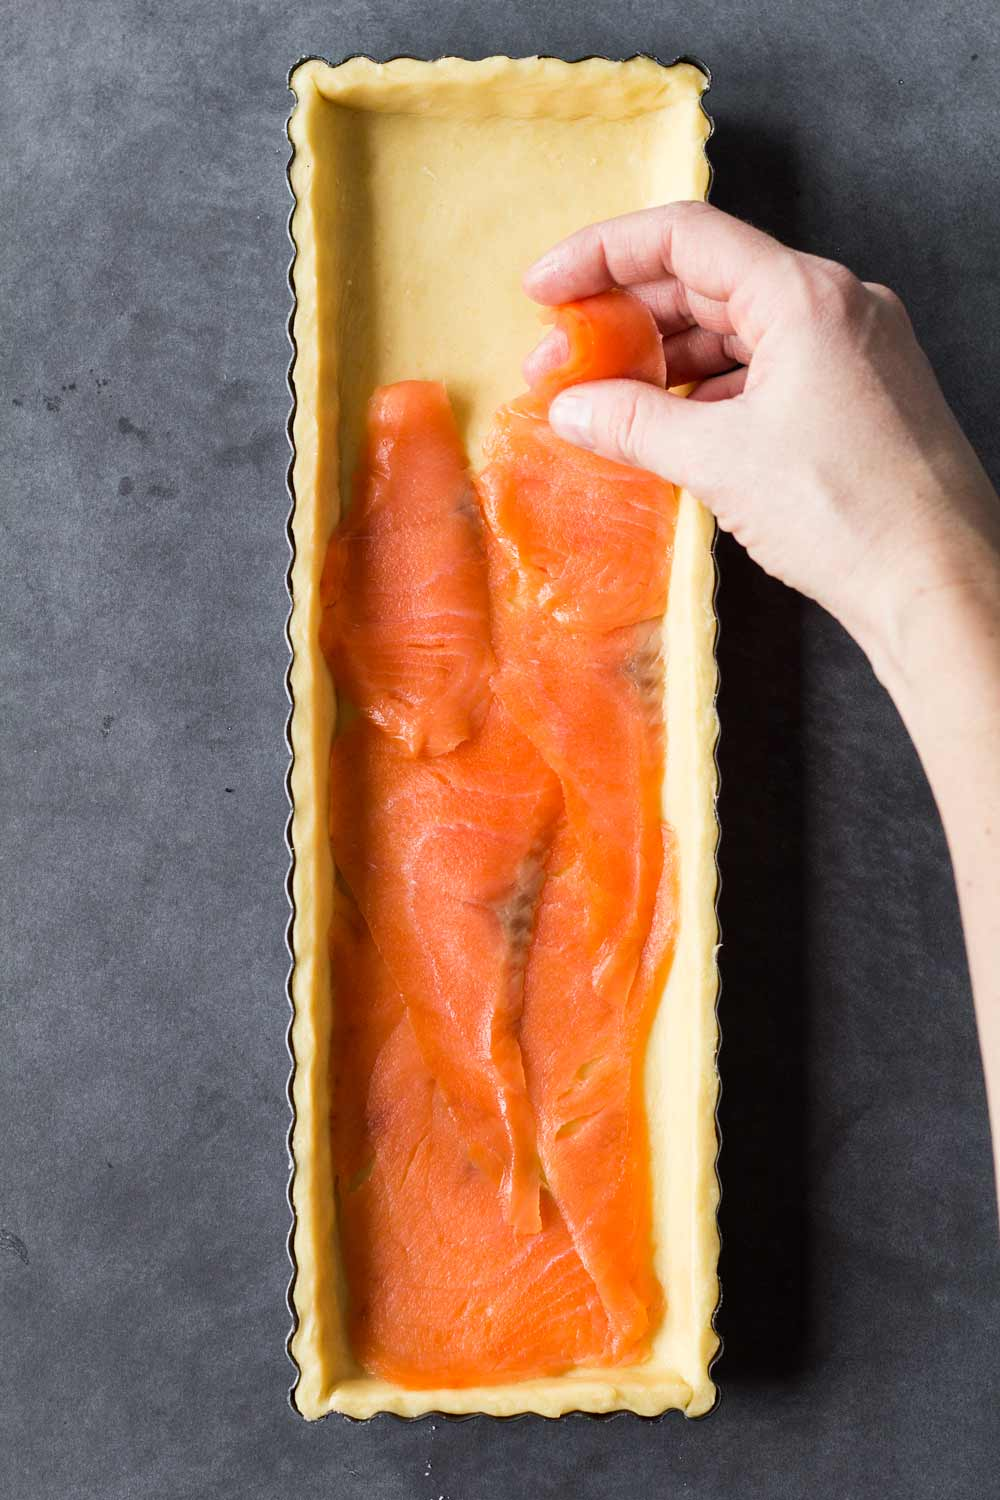 placing slices of smoked salmon into a puff pastry crust